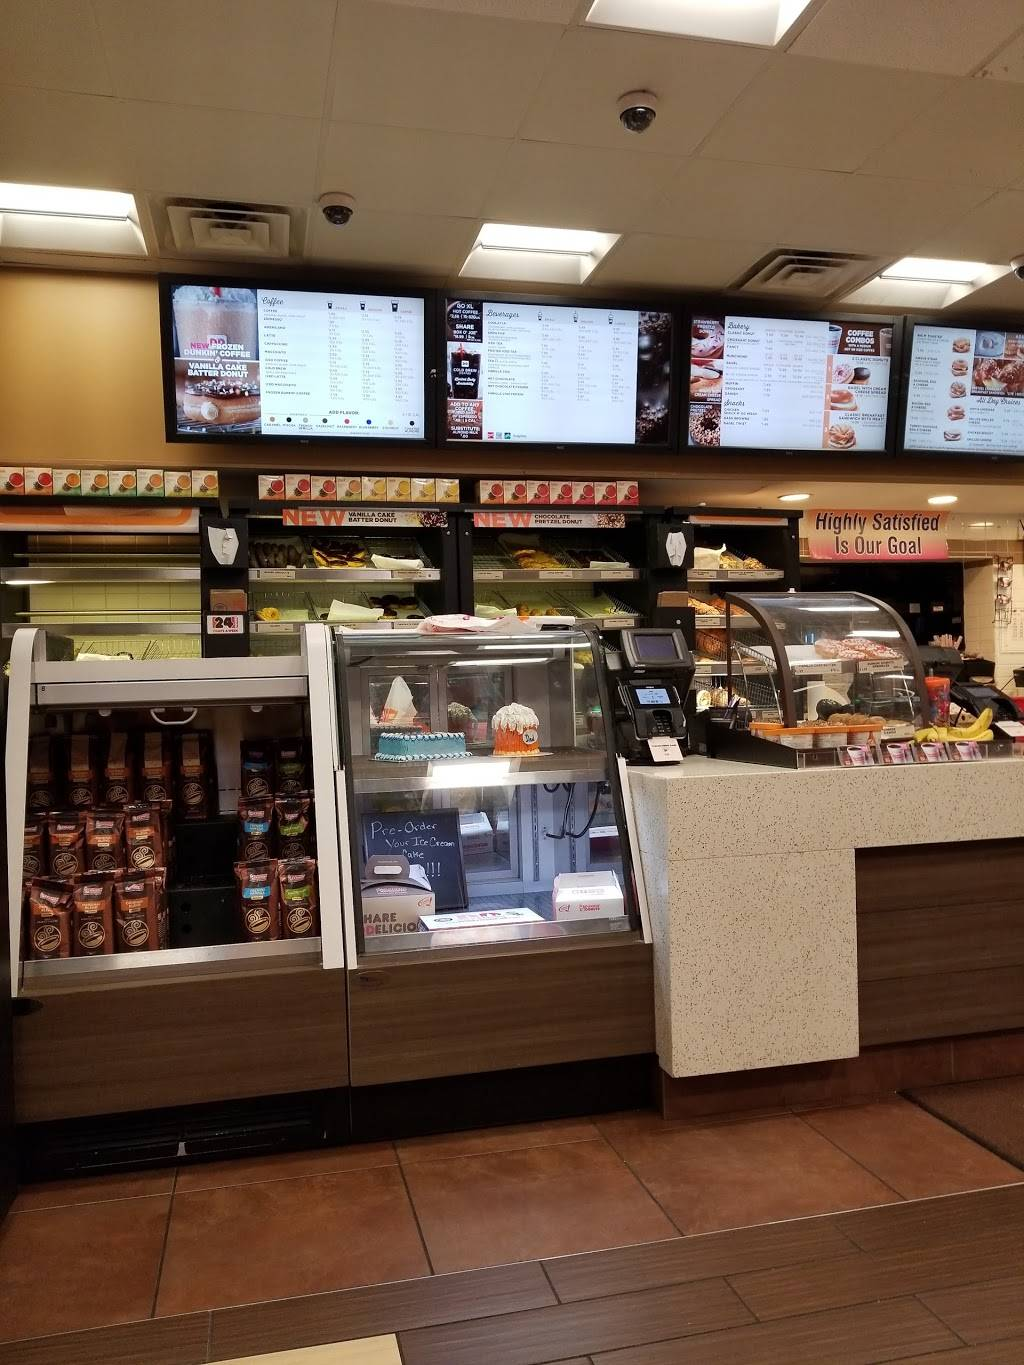 Dunkin Donuts   cafe   1990 Skokie Valley Rd, Highland Park, IL 60035, USA   8474329177 OR +1 847-432-9177